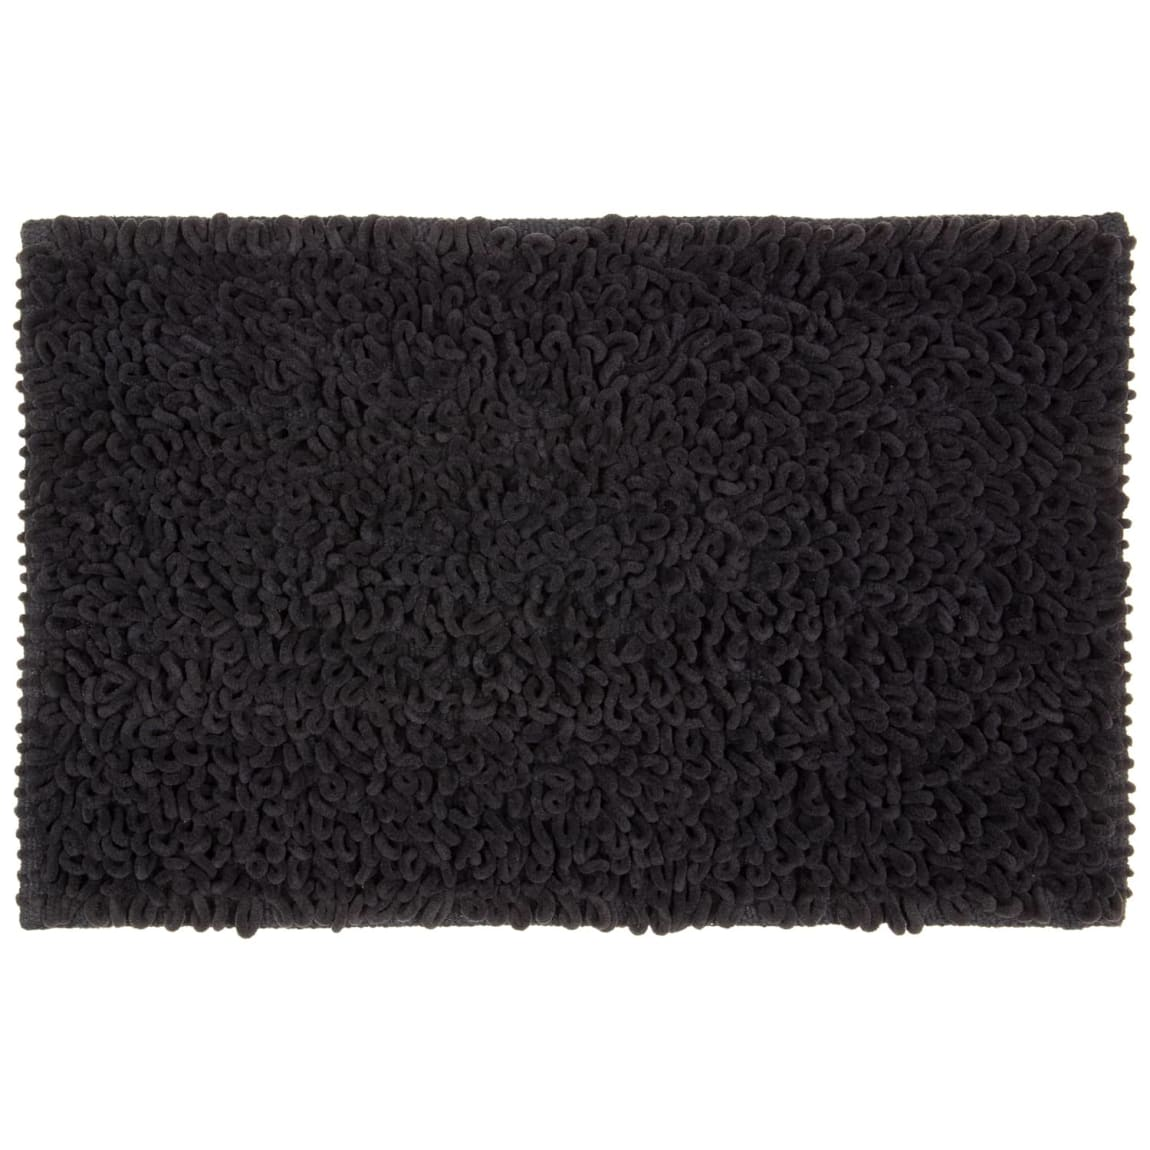 Loop Bath Mat 45 x 75cm - Black